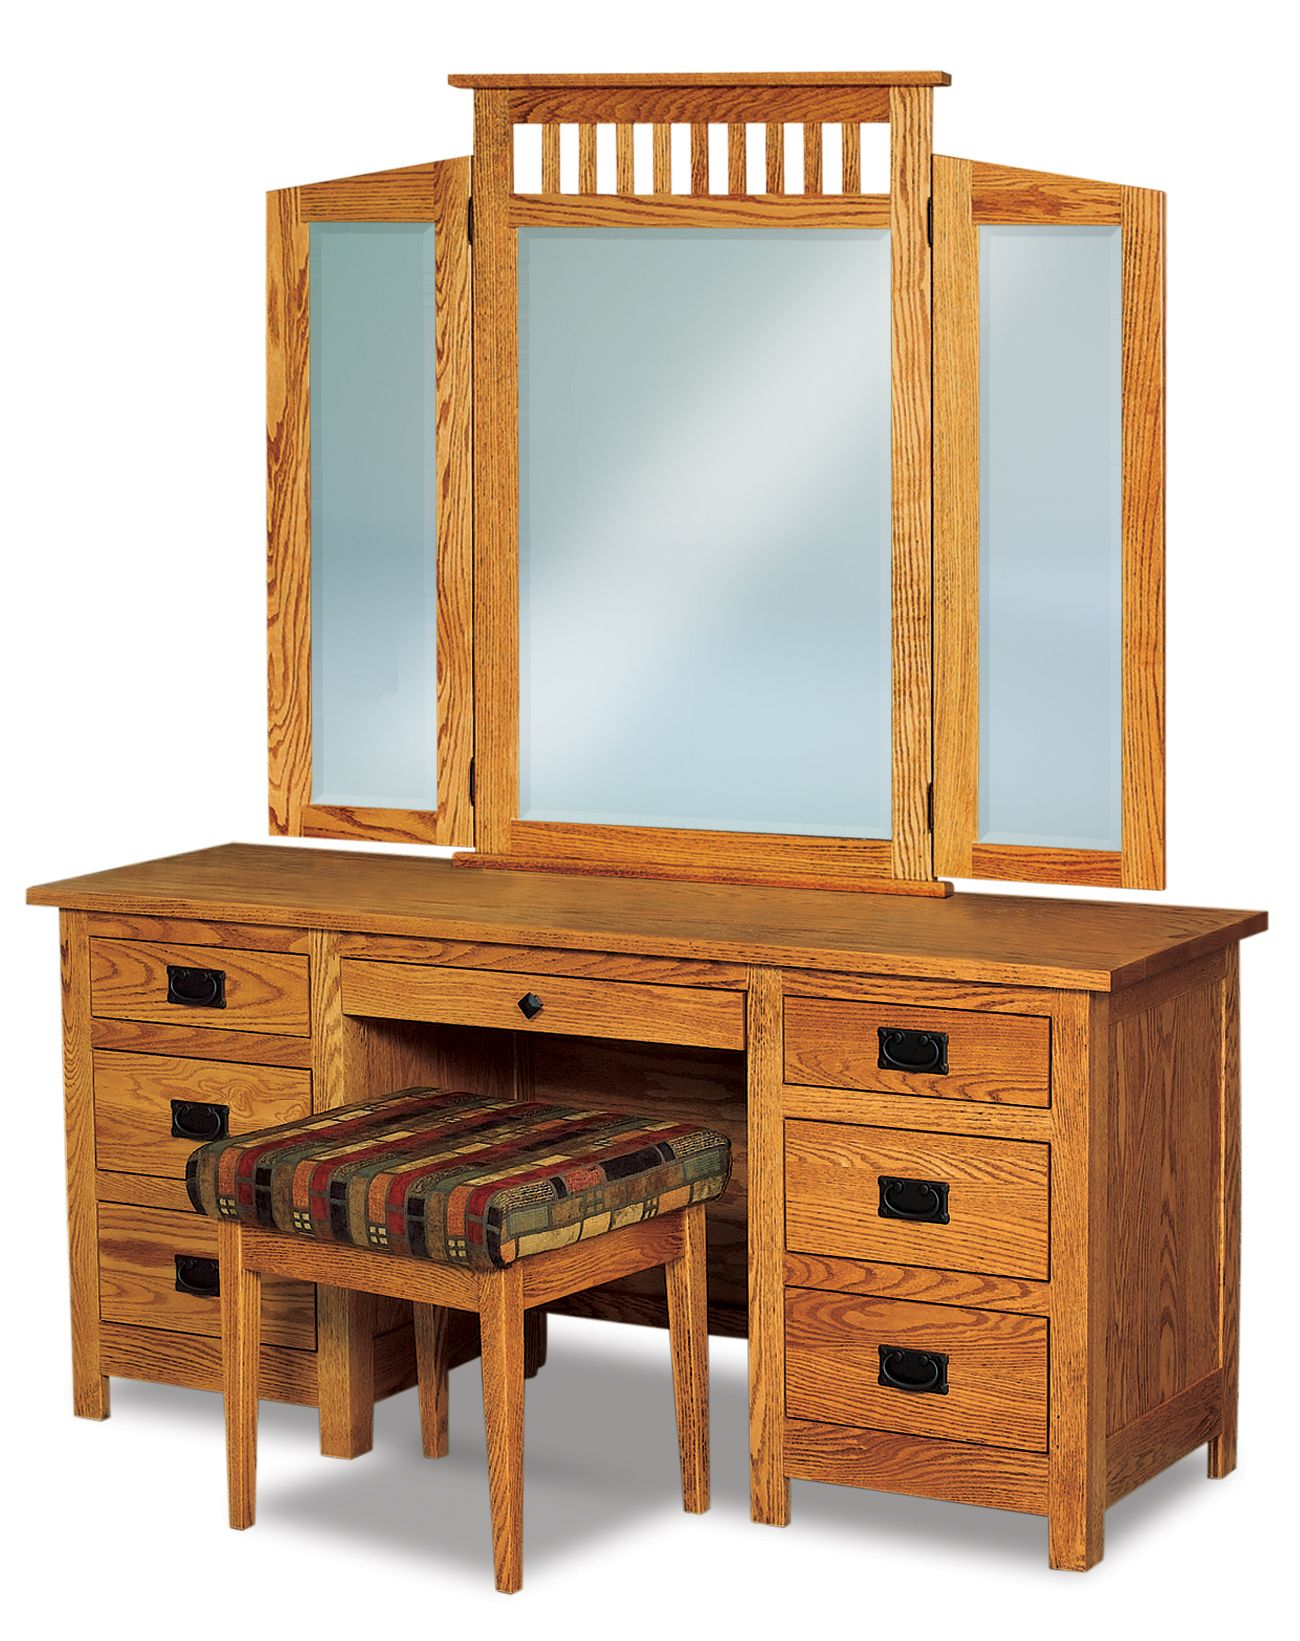 The following woodworking plans Are Mission style Buffet Table